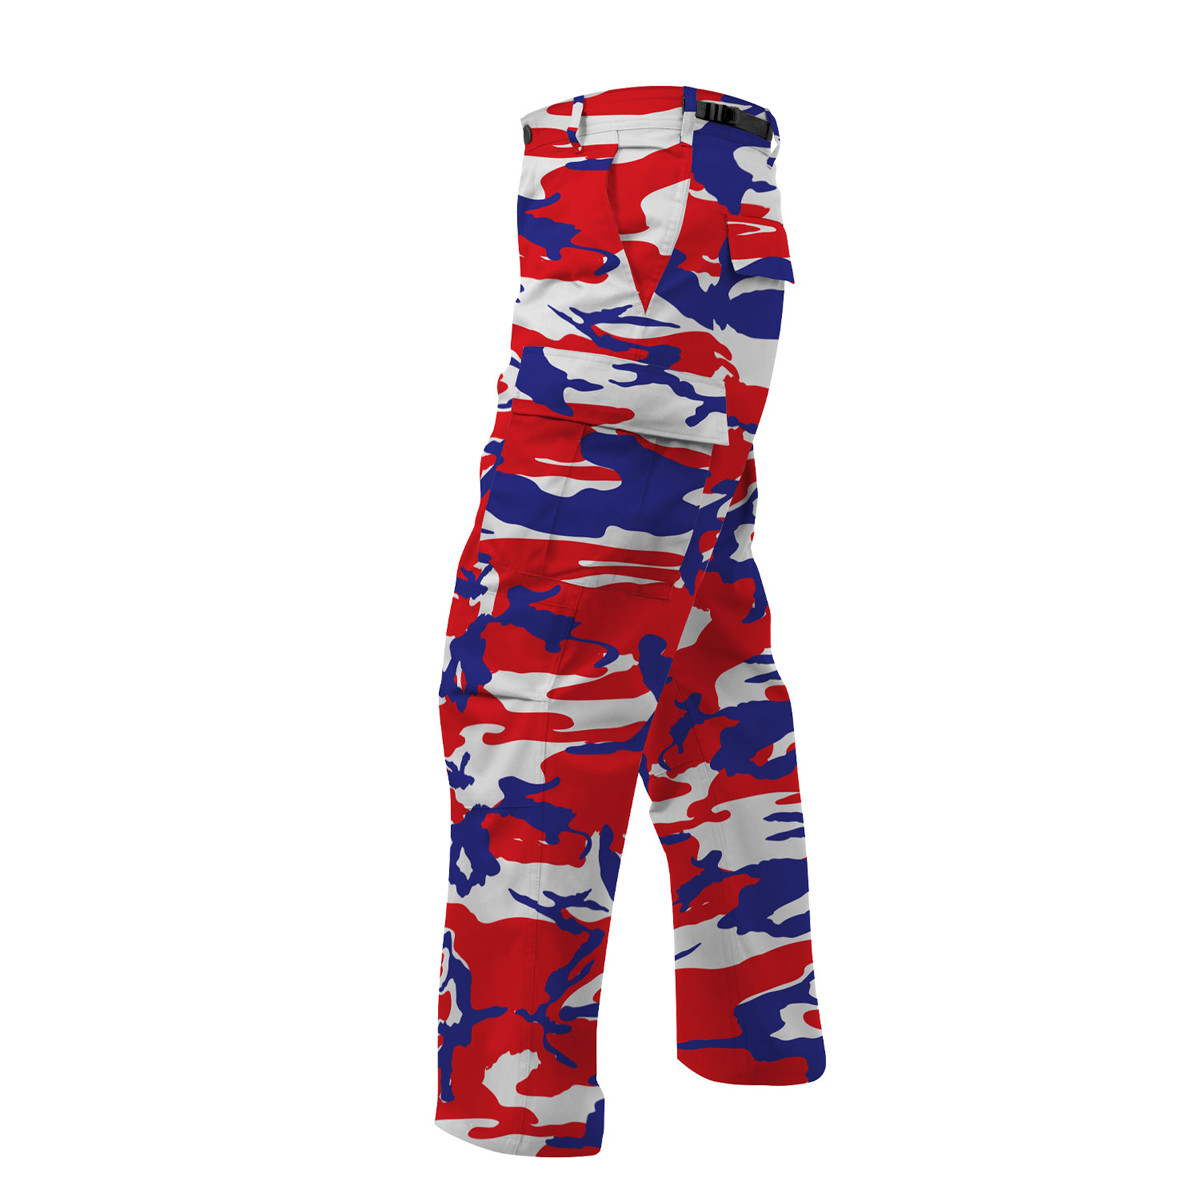 Shop Red White Blue Camo BDU s - Fatigues Army Navy Gear 34b8c7f433b